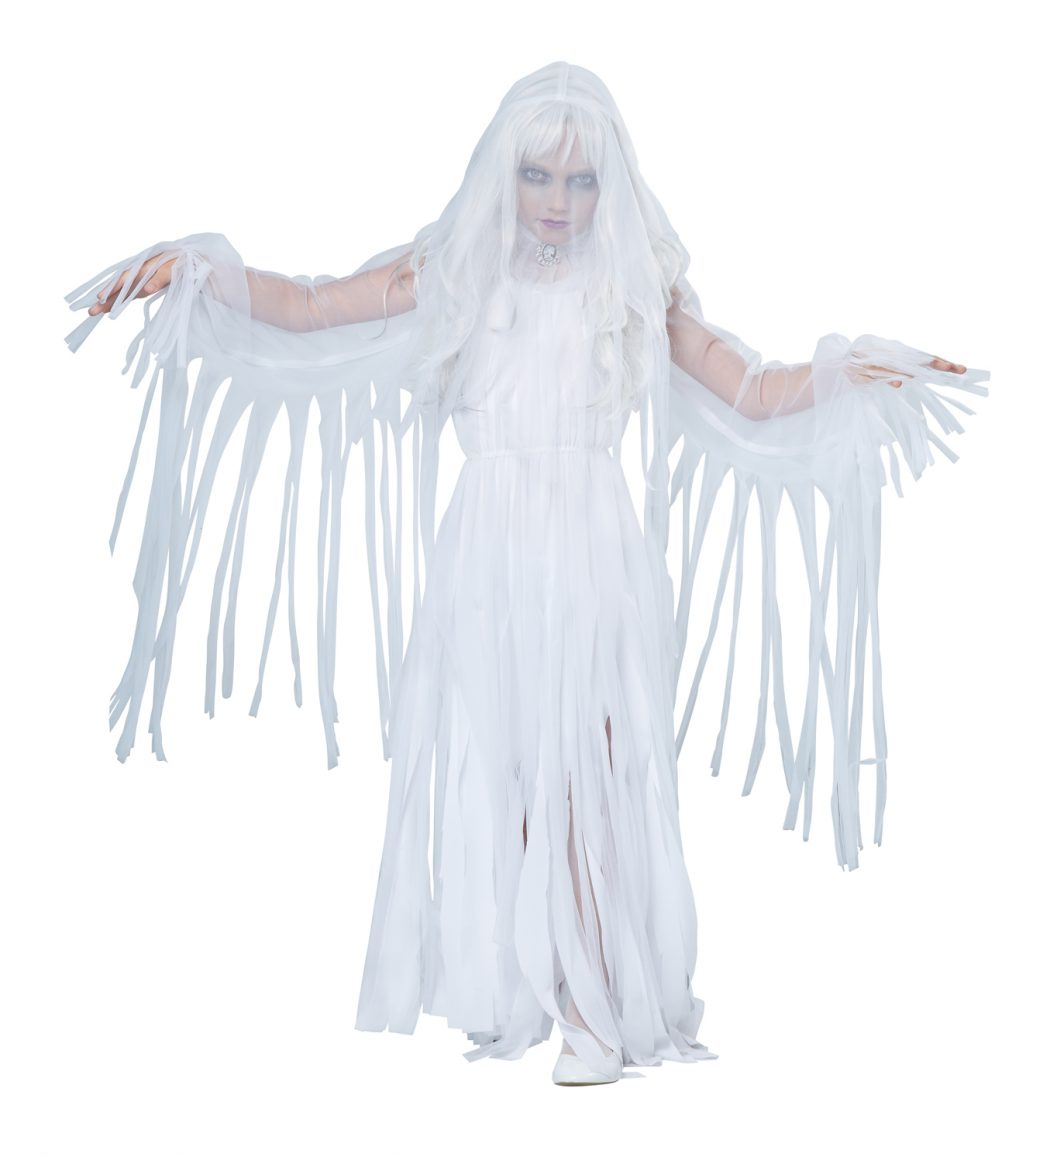 A-ghost2 Top 10 Teenagers Halloween Costumes Trends in 2017